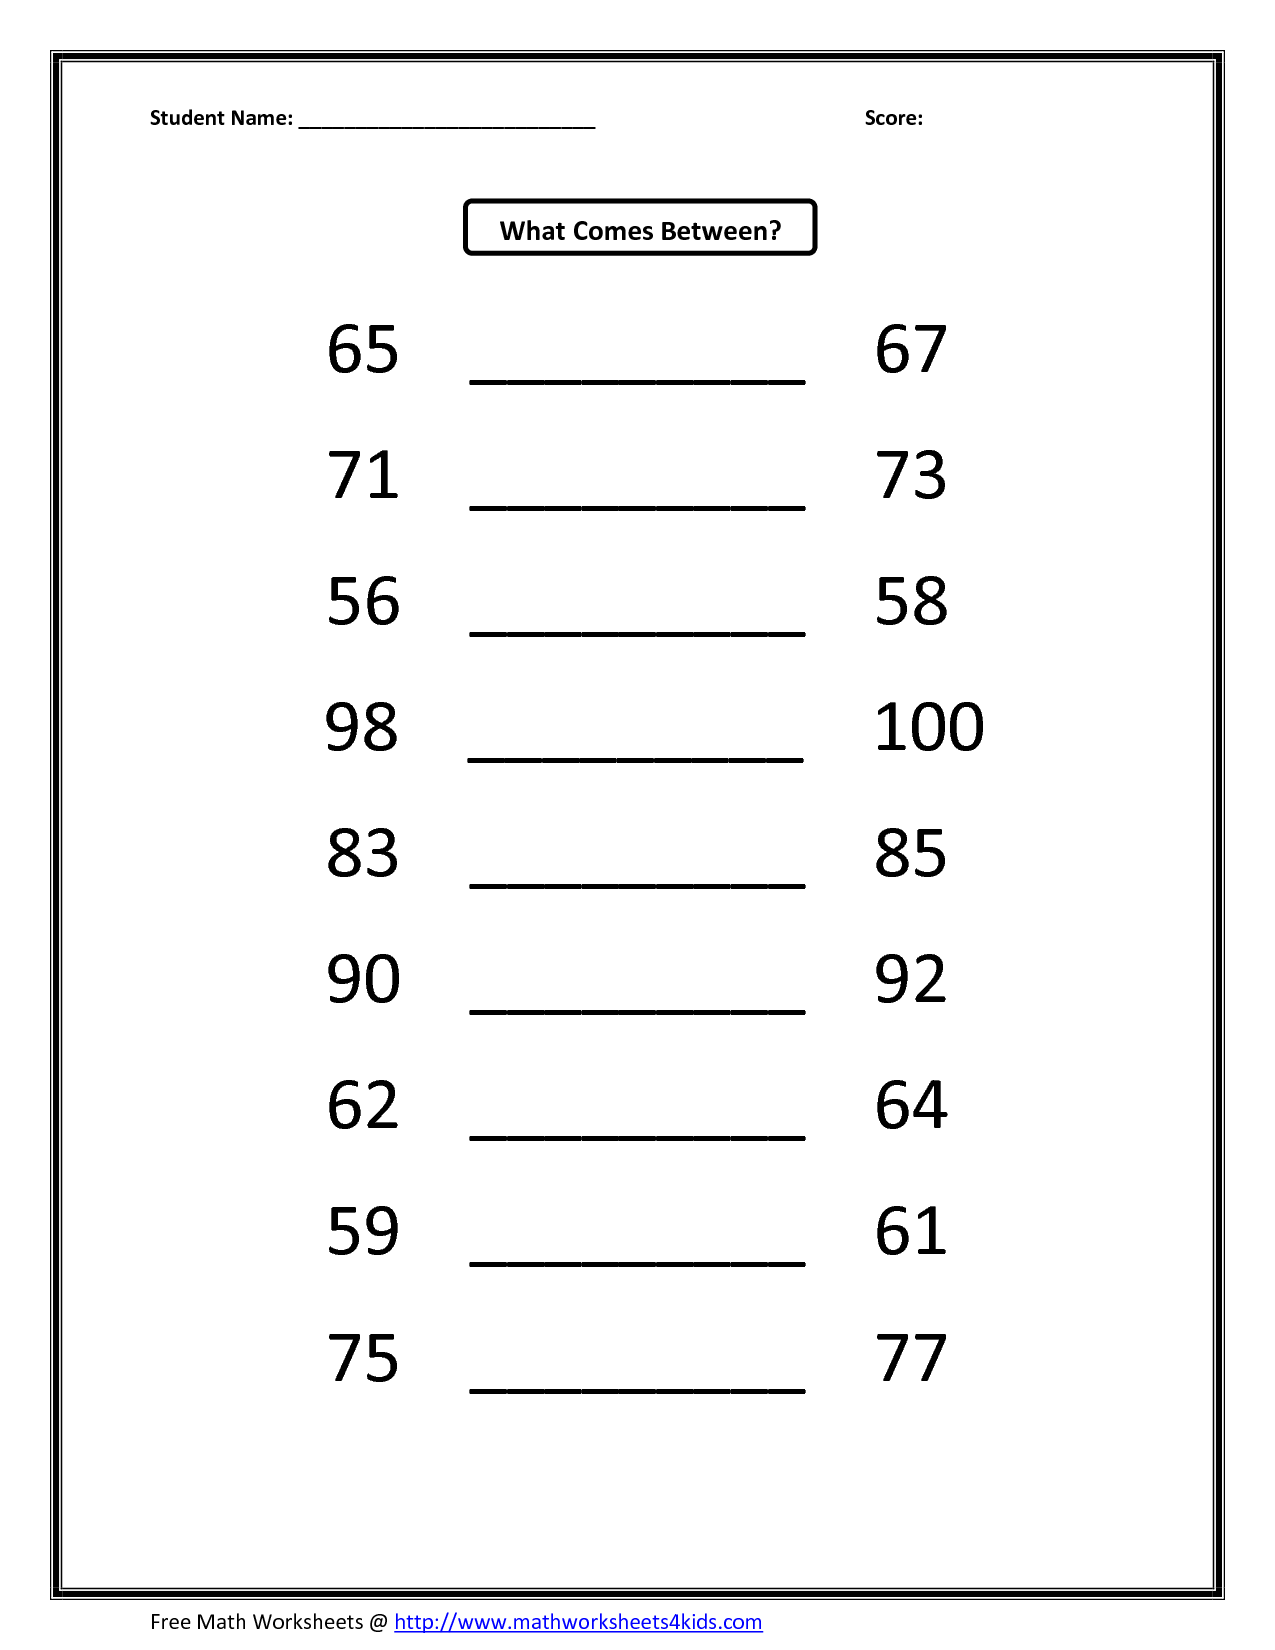 Kumon Math Worksheets Answers | Kids and parenting | Pinterest ...